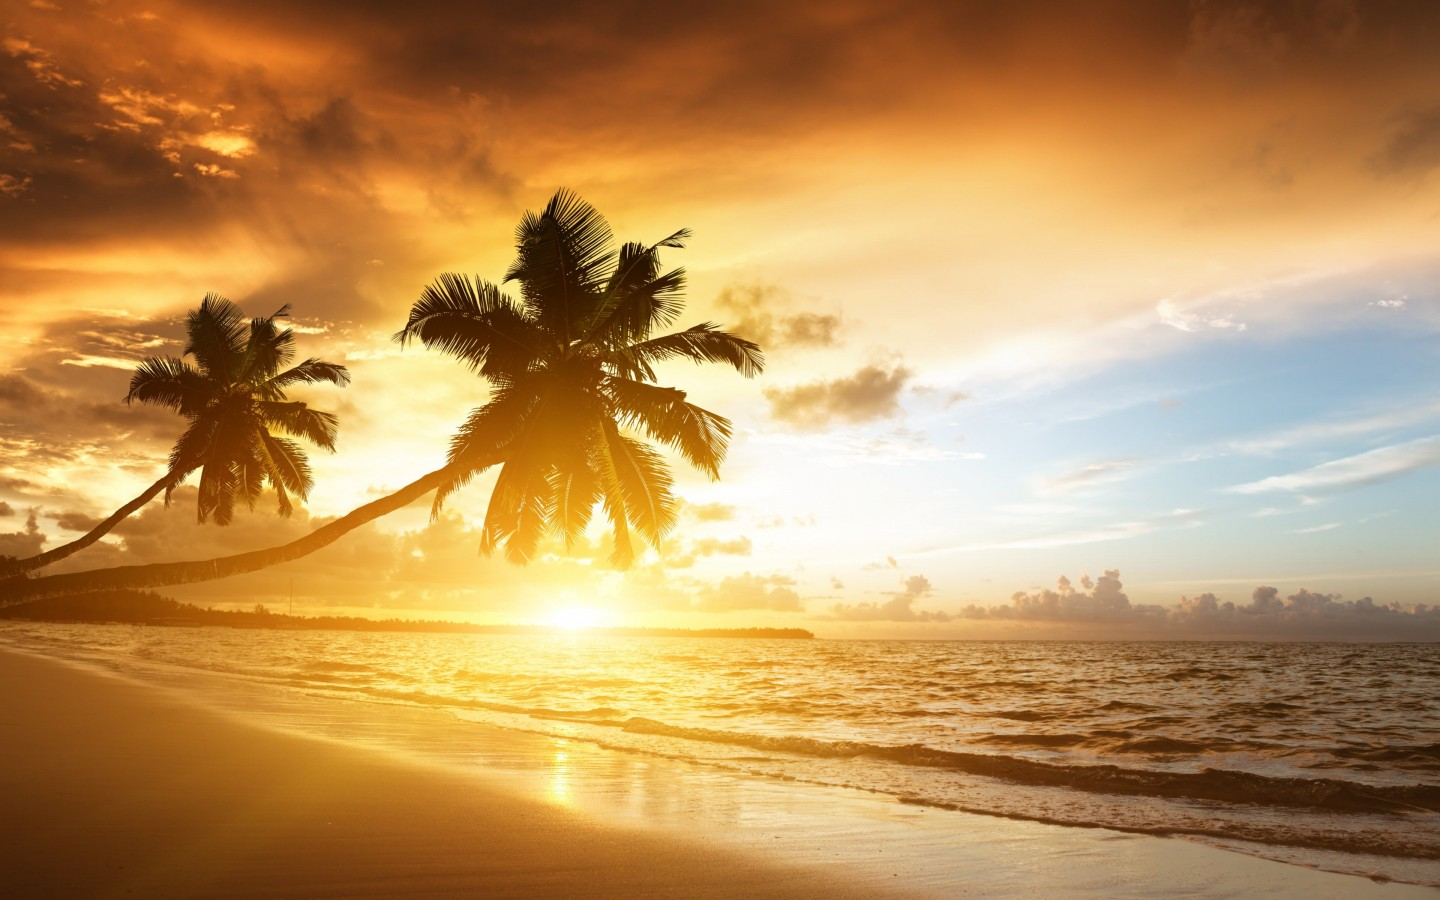 Beach With Palm Trees At Sunset Wallpaper for Desktop 1440x900